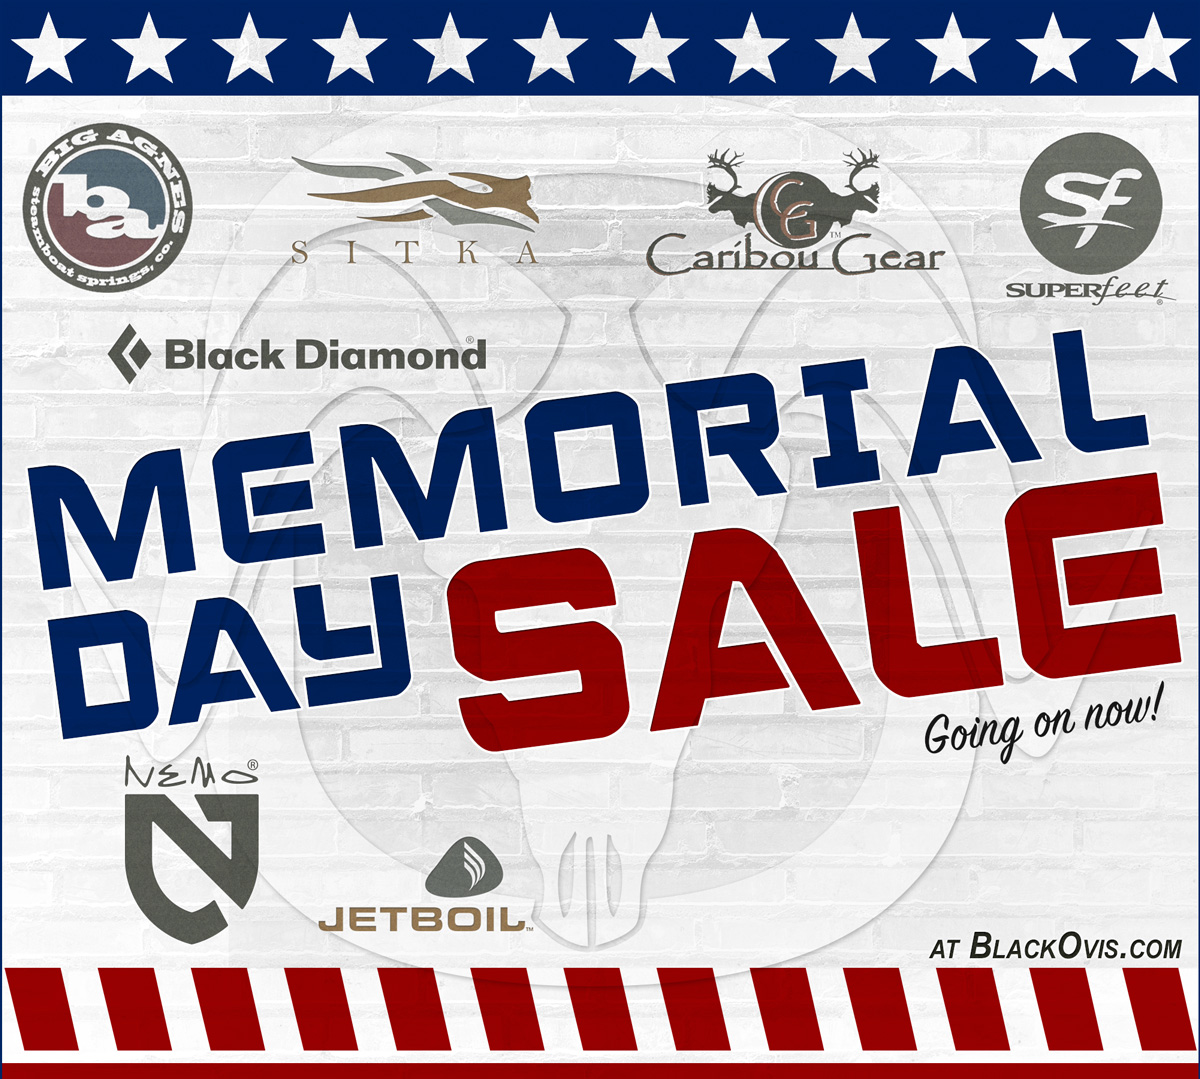 bf1a7adfc7123 BlackOvis.com: Memorial Day Sales, Going on Now! | Milled